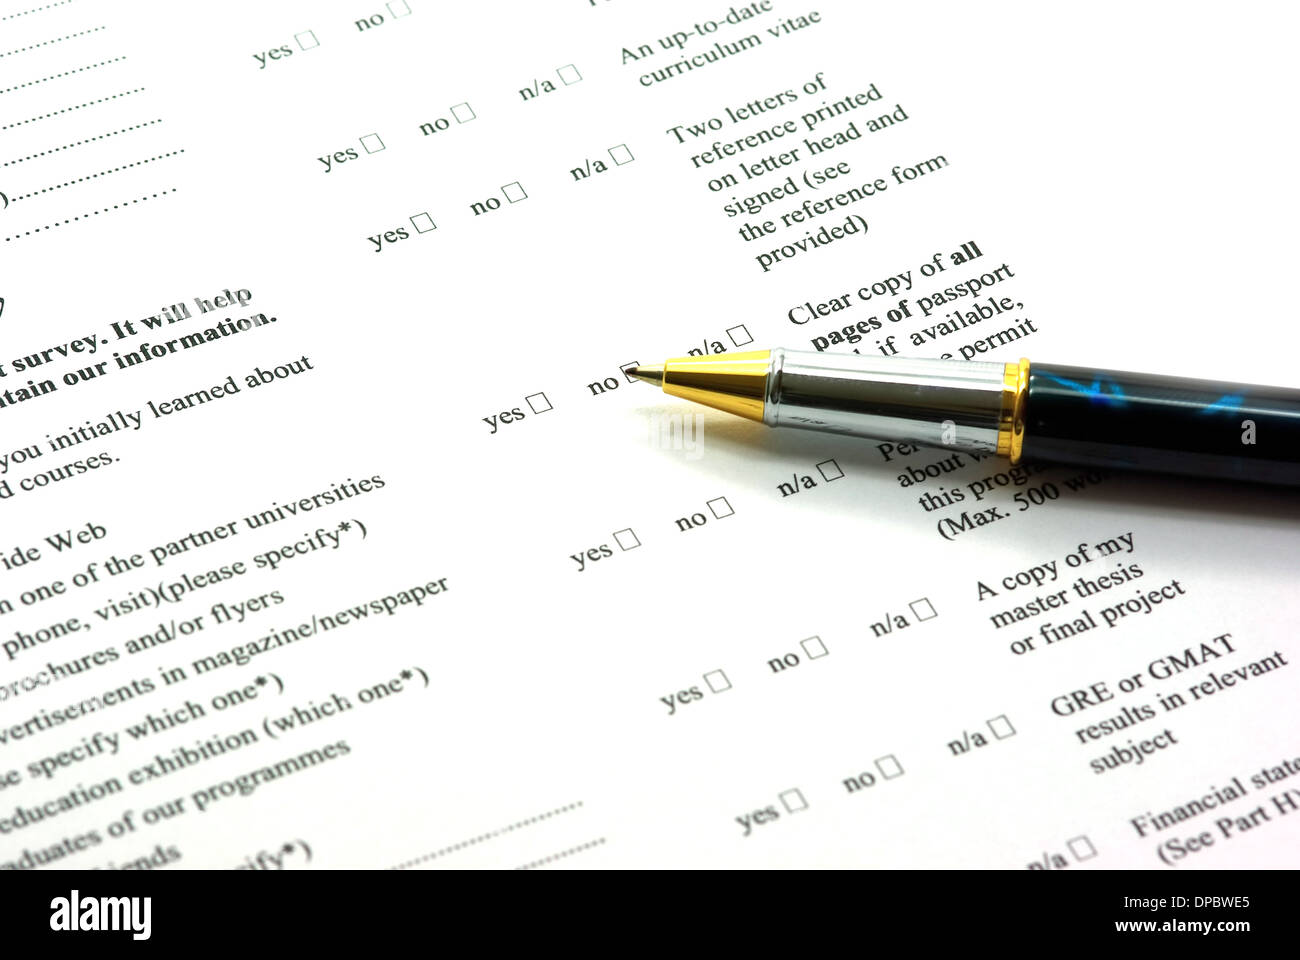 Completing application form with pen in education Stock Photo